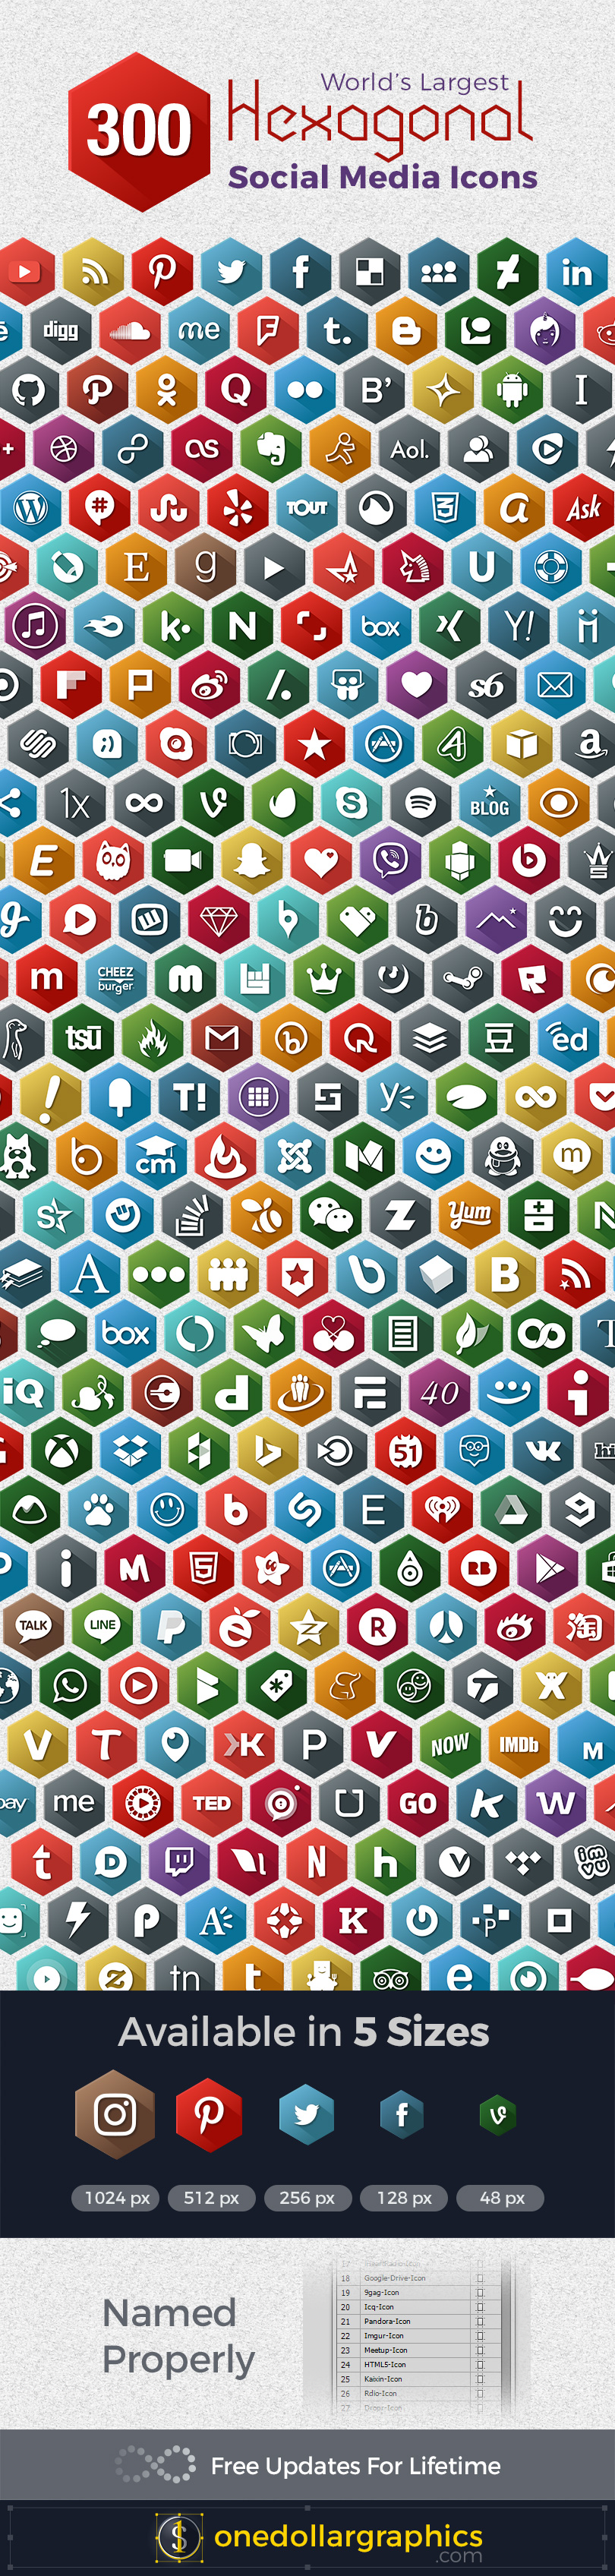 300-hexagonal-social-media-icons-png-ai-png